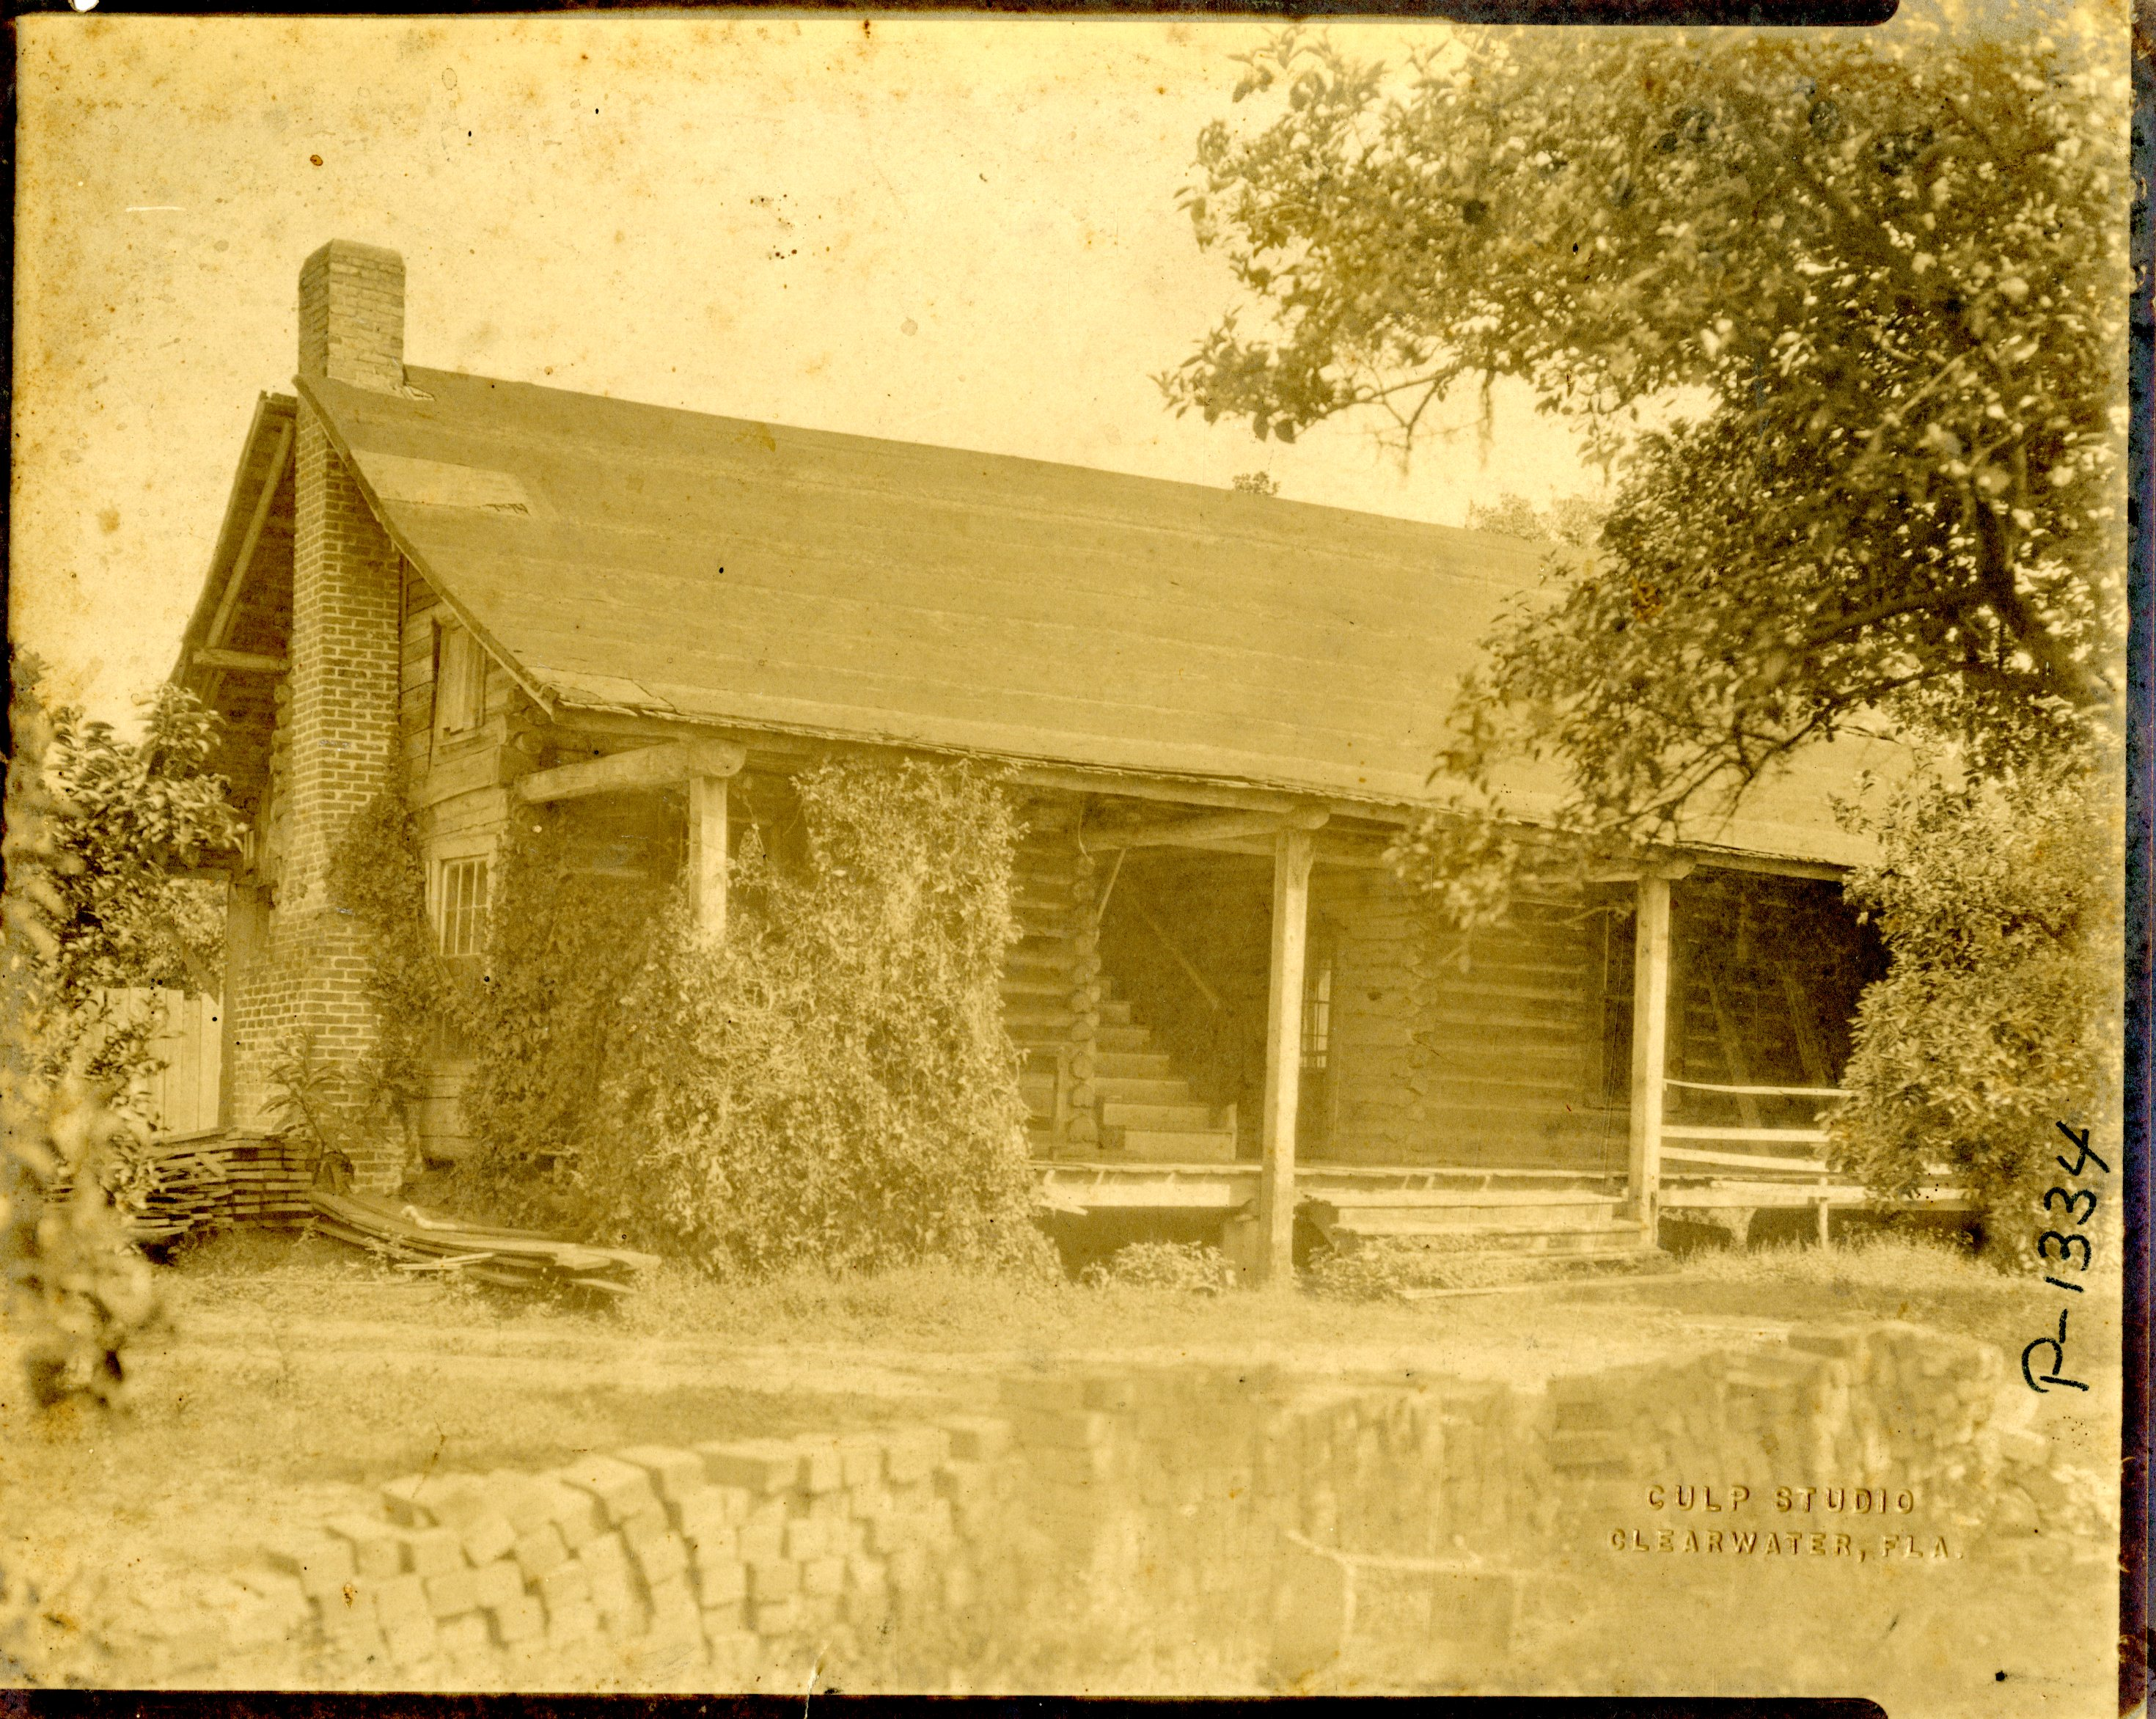 McMullen-Coachman Log Cabin, Clearwater, Florida, circa 1920.